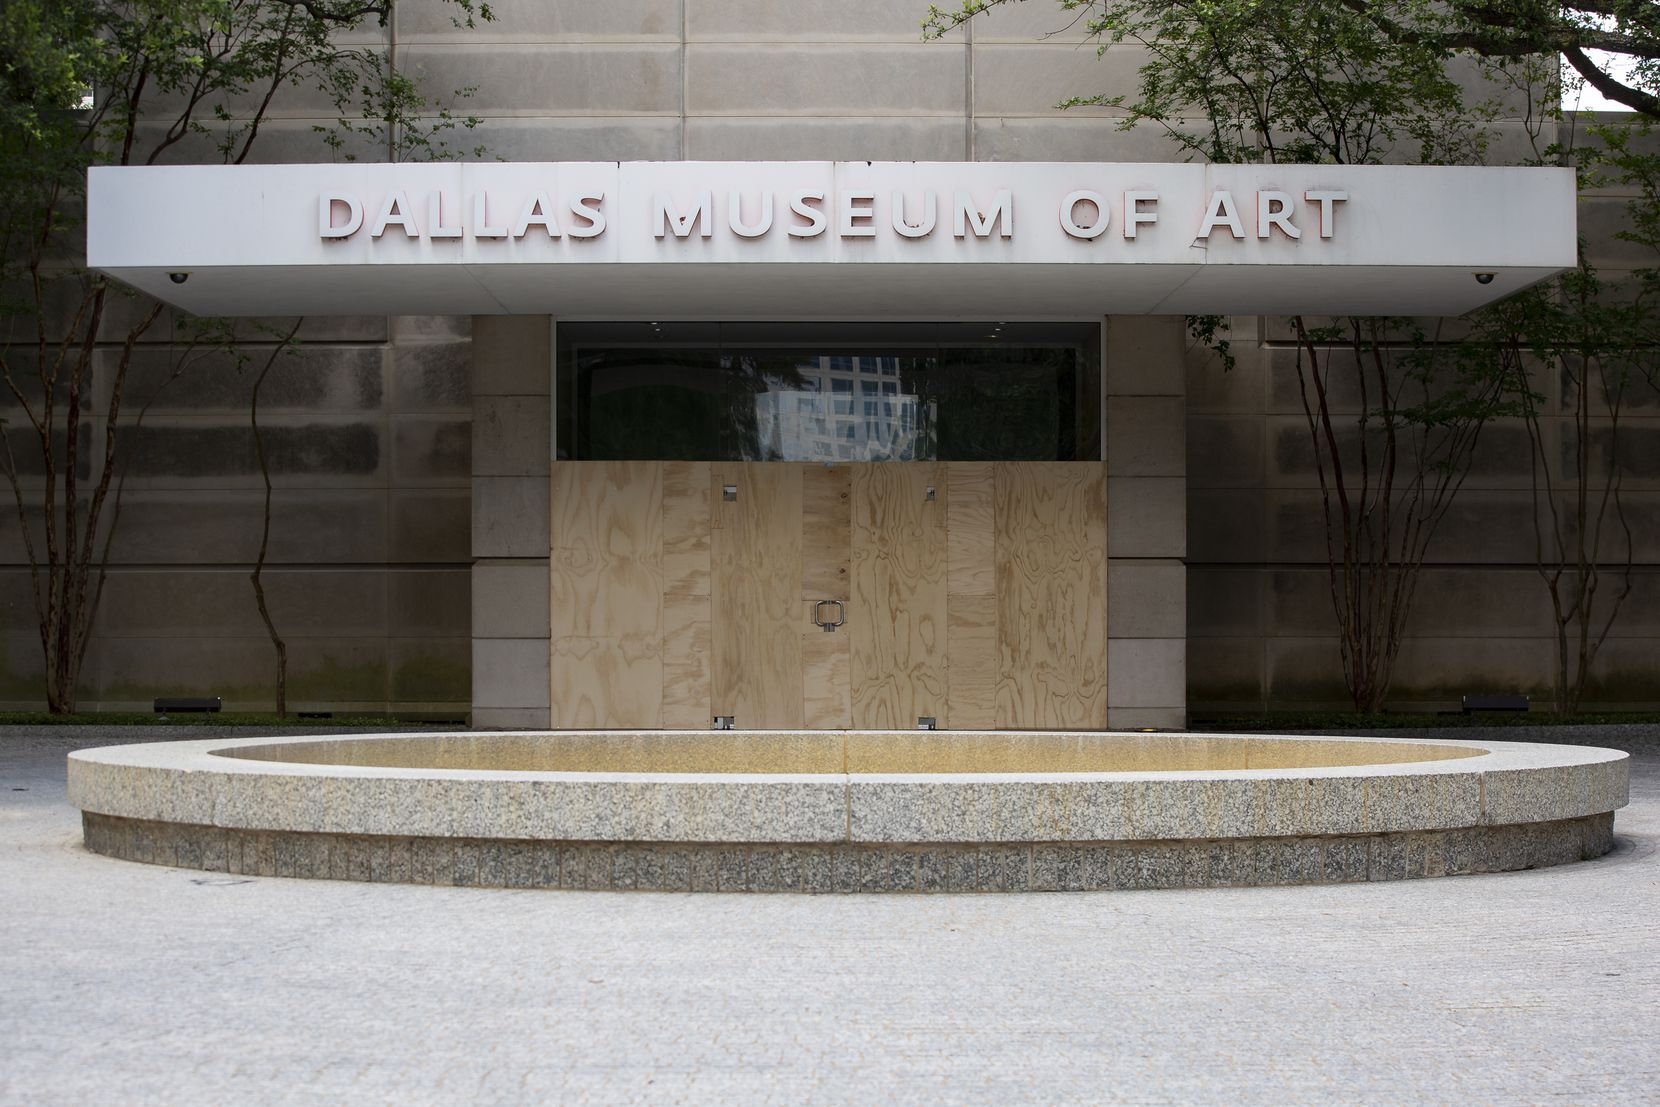 The Dallas Museum of Art is boarded up on Sunday morning, May 31.